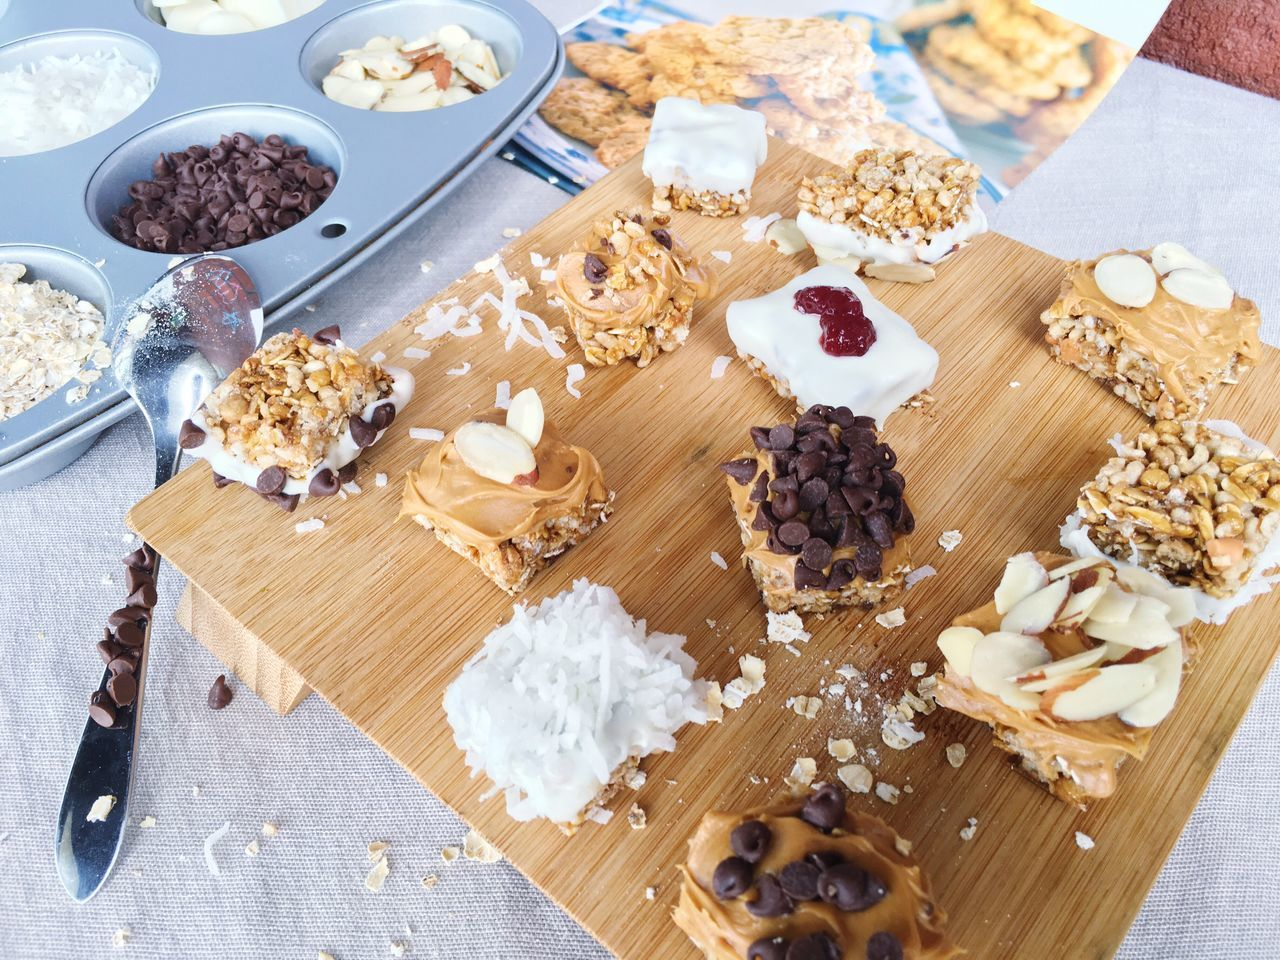 Check This Out Taking Photos Enjoying Life Showcase July Togo Breakfast Taking Photos Almonds White Chocolate Coconut Chocolate Dessert Snacks! Oats Baking Handmade For You